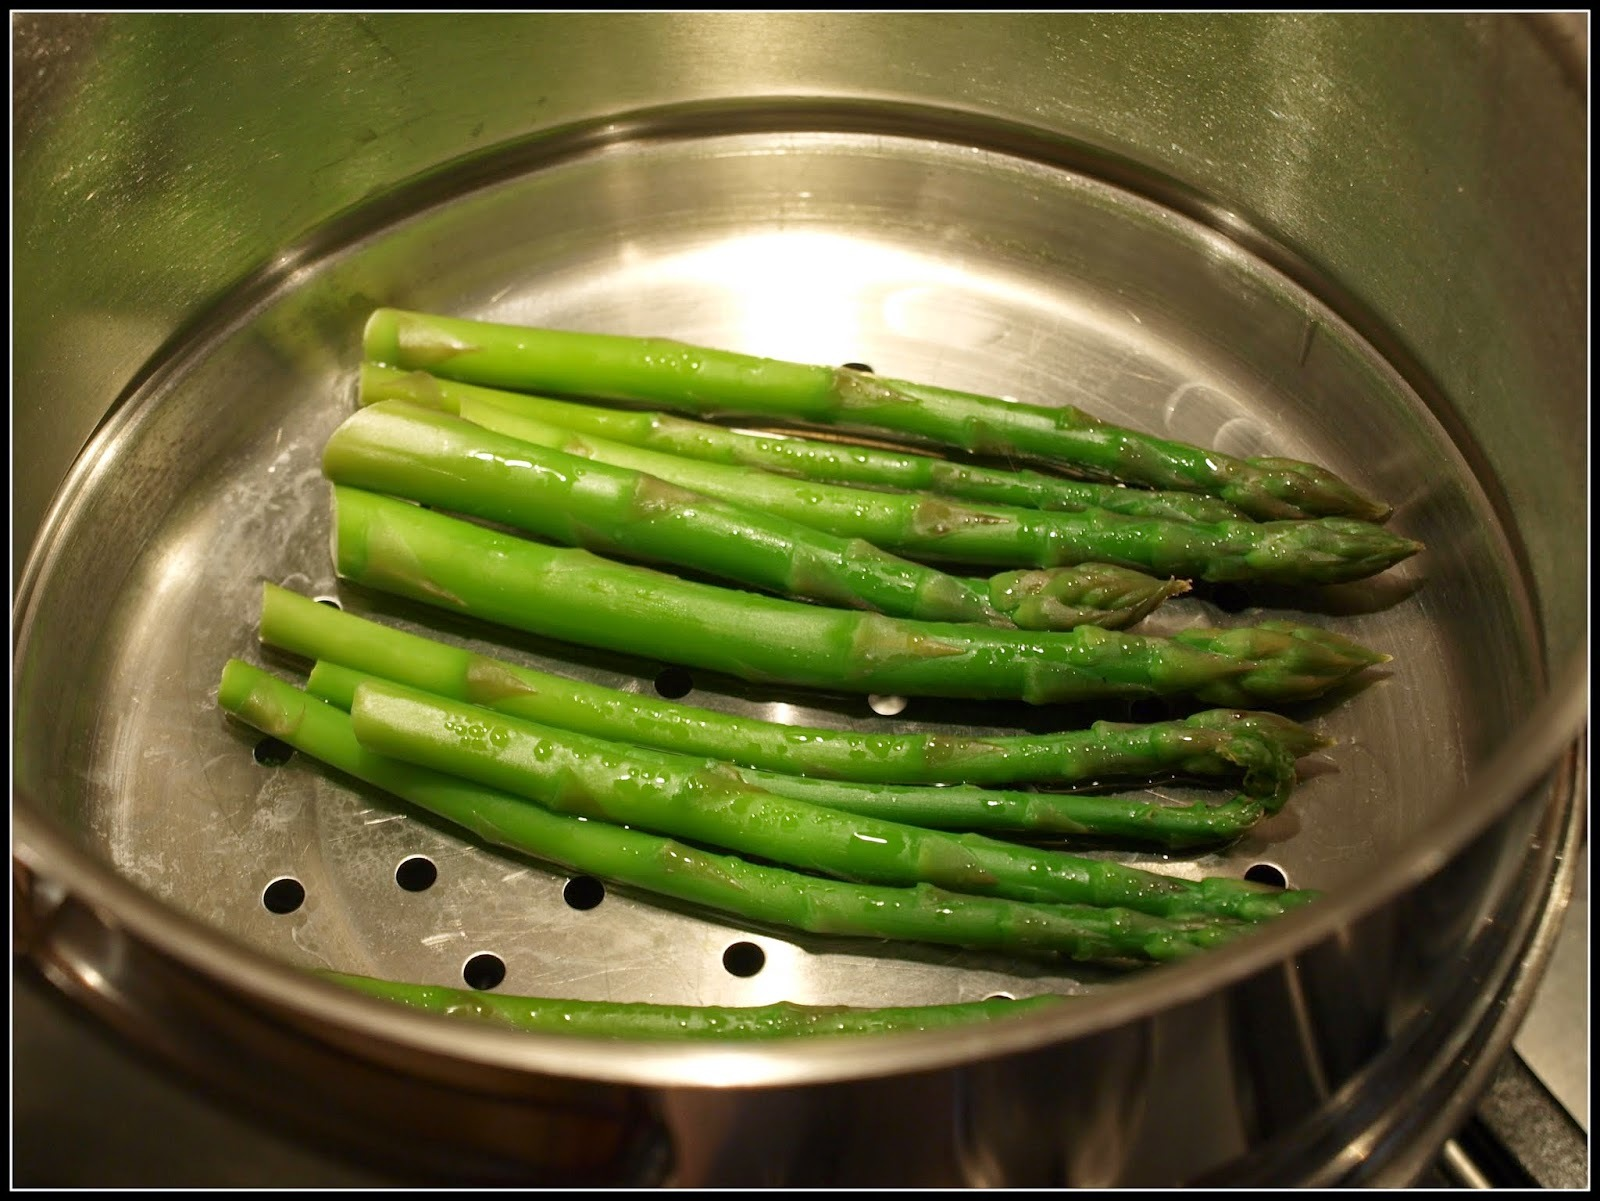 Starting to think about Asparagus